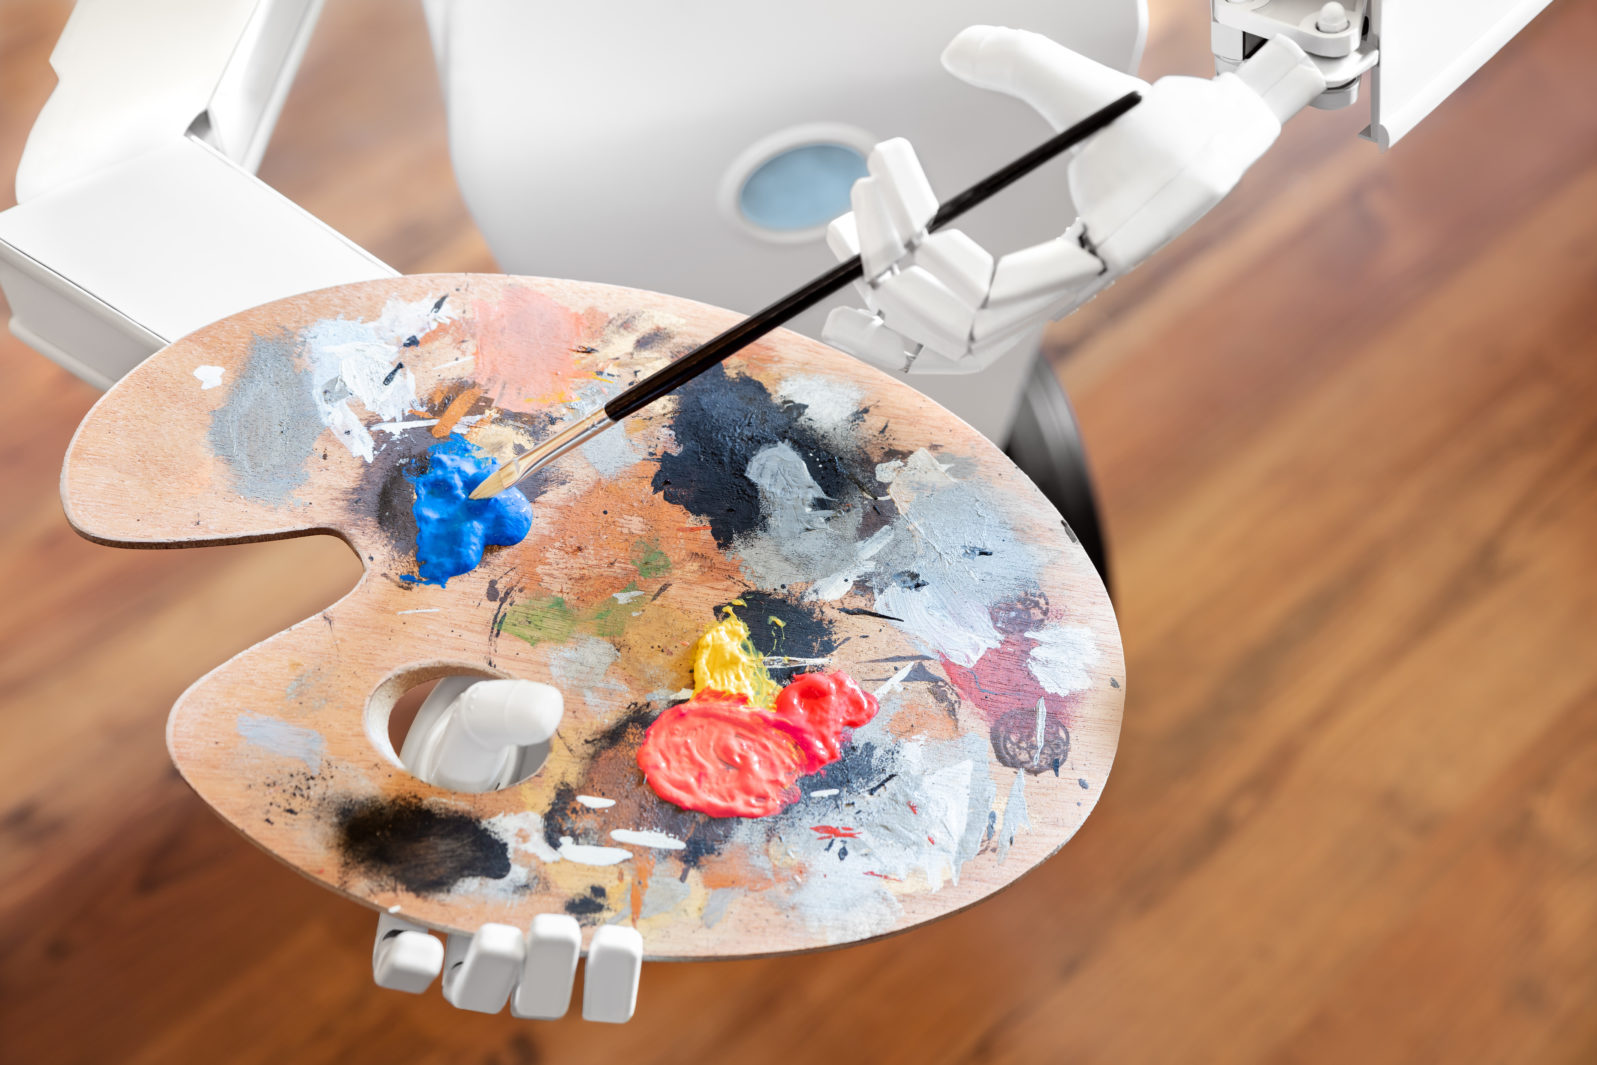 robot ai artificial intelligence is learning creativity